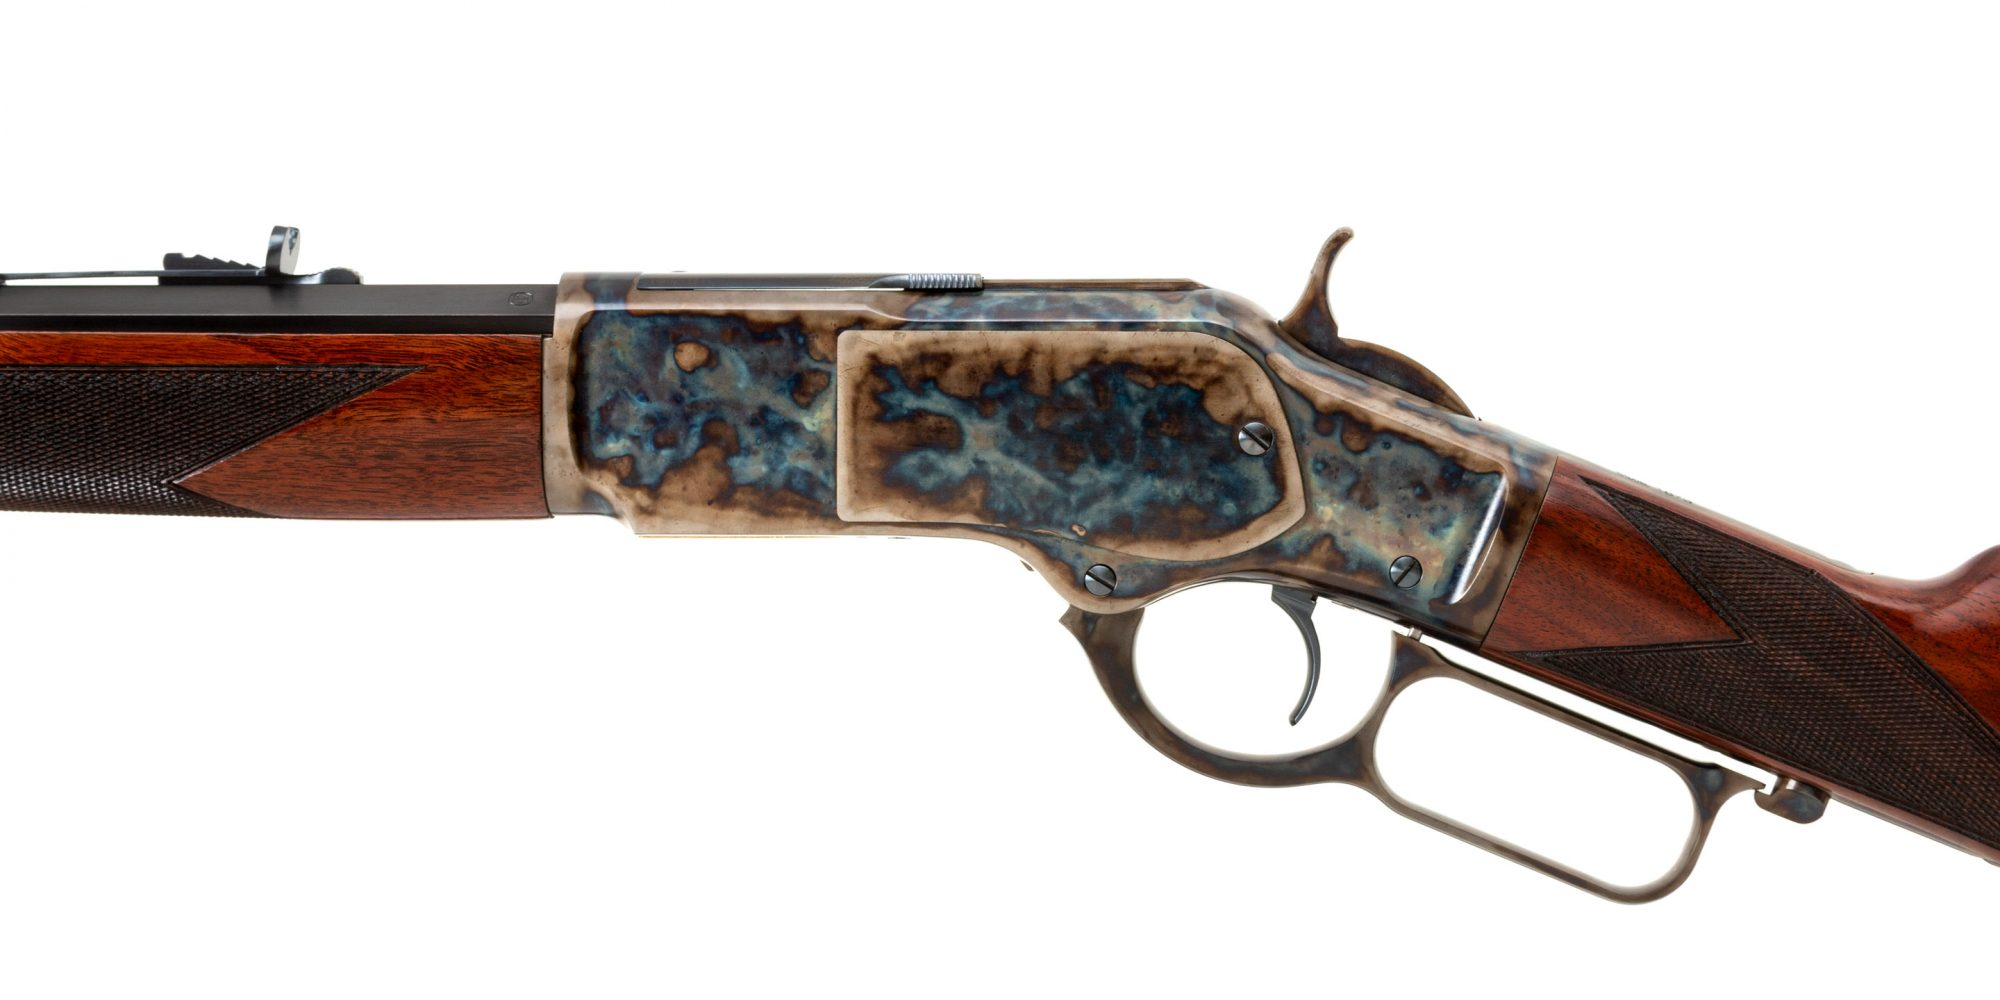 Photo of a Turnbull Finished Winchester 1873 Deluxe Sporter, featuring bone charcoal color case hardening